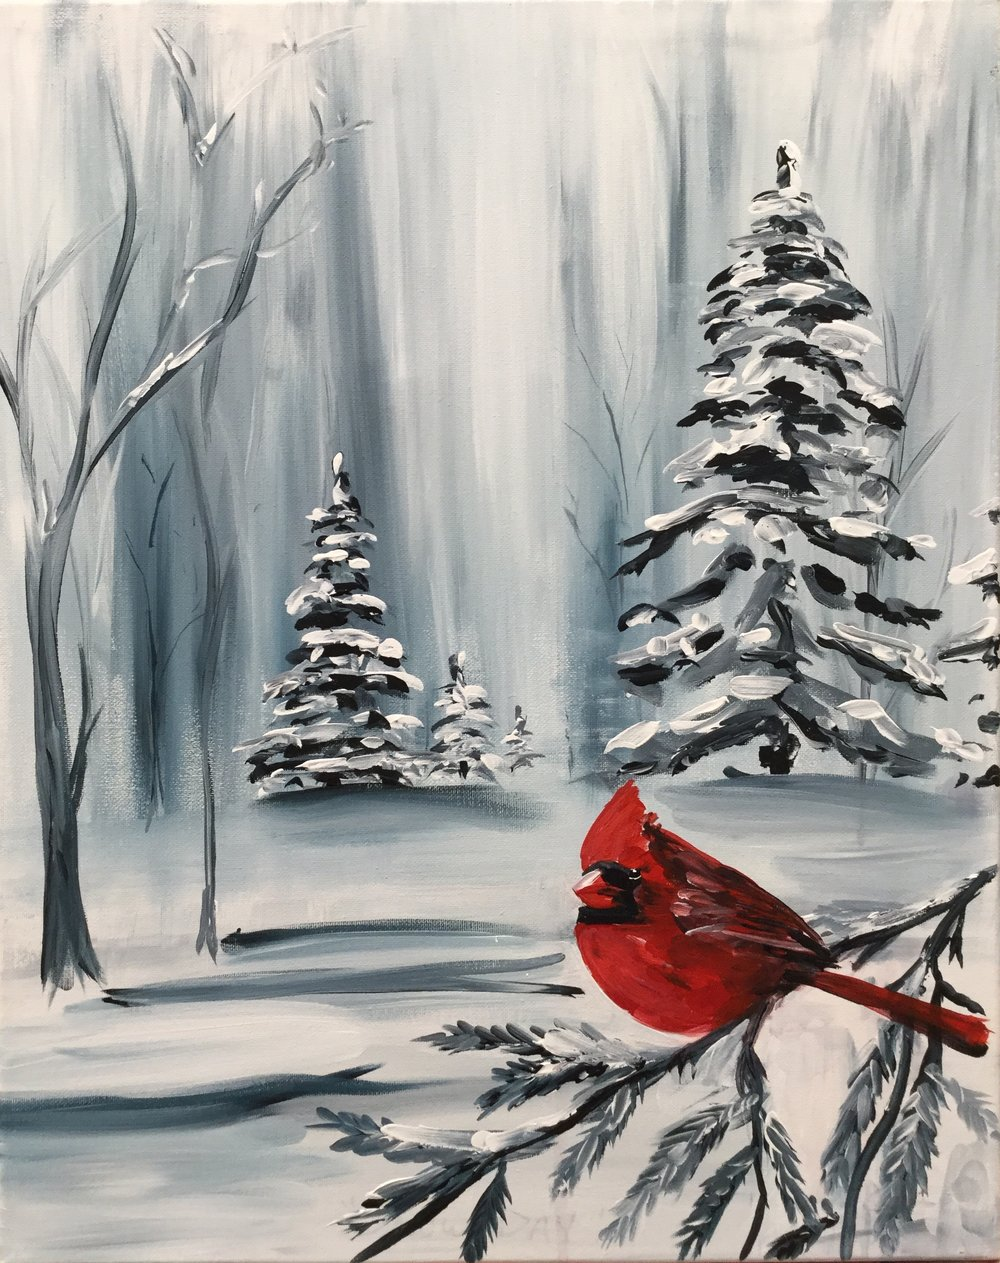 Paint Night: SOLD OUT - Even though this date is full, you can book a private paint party with a min. of 5 people.Level: EasyPrice: $40/ guest